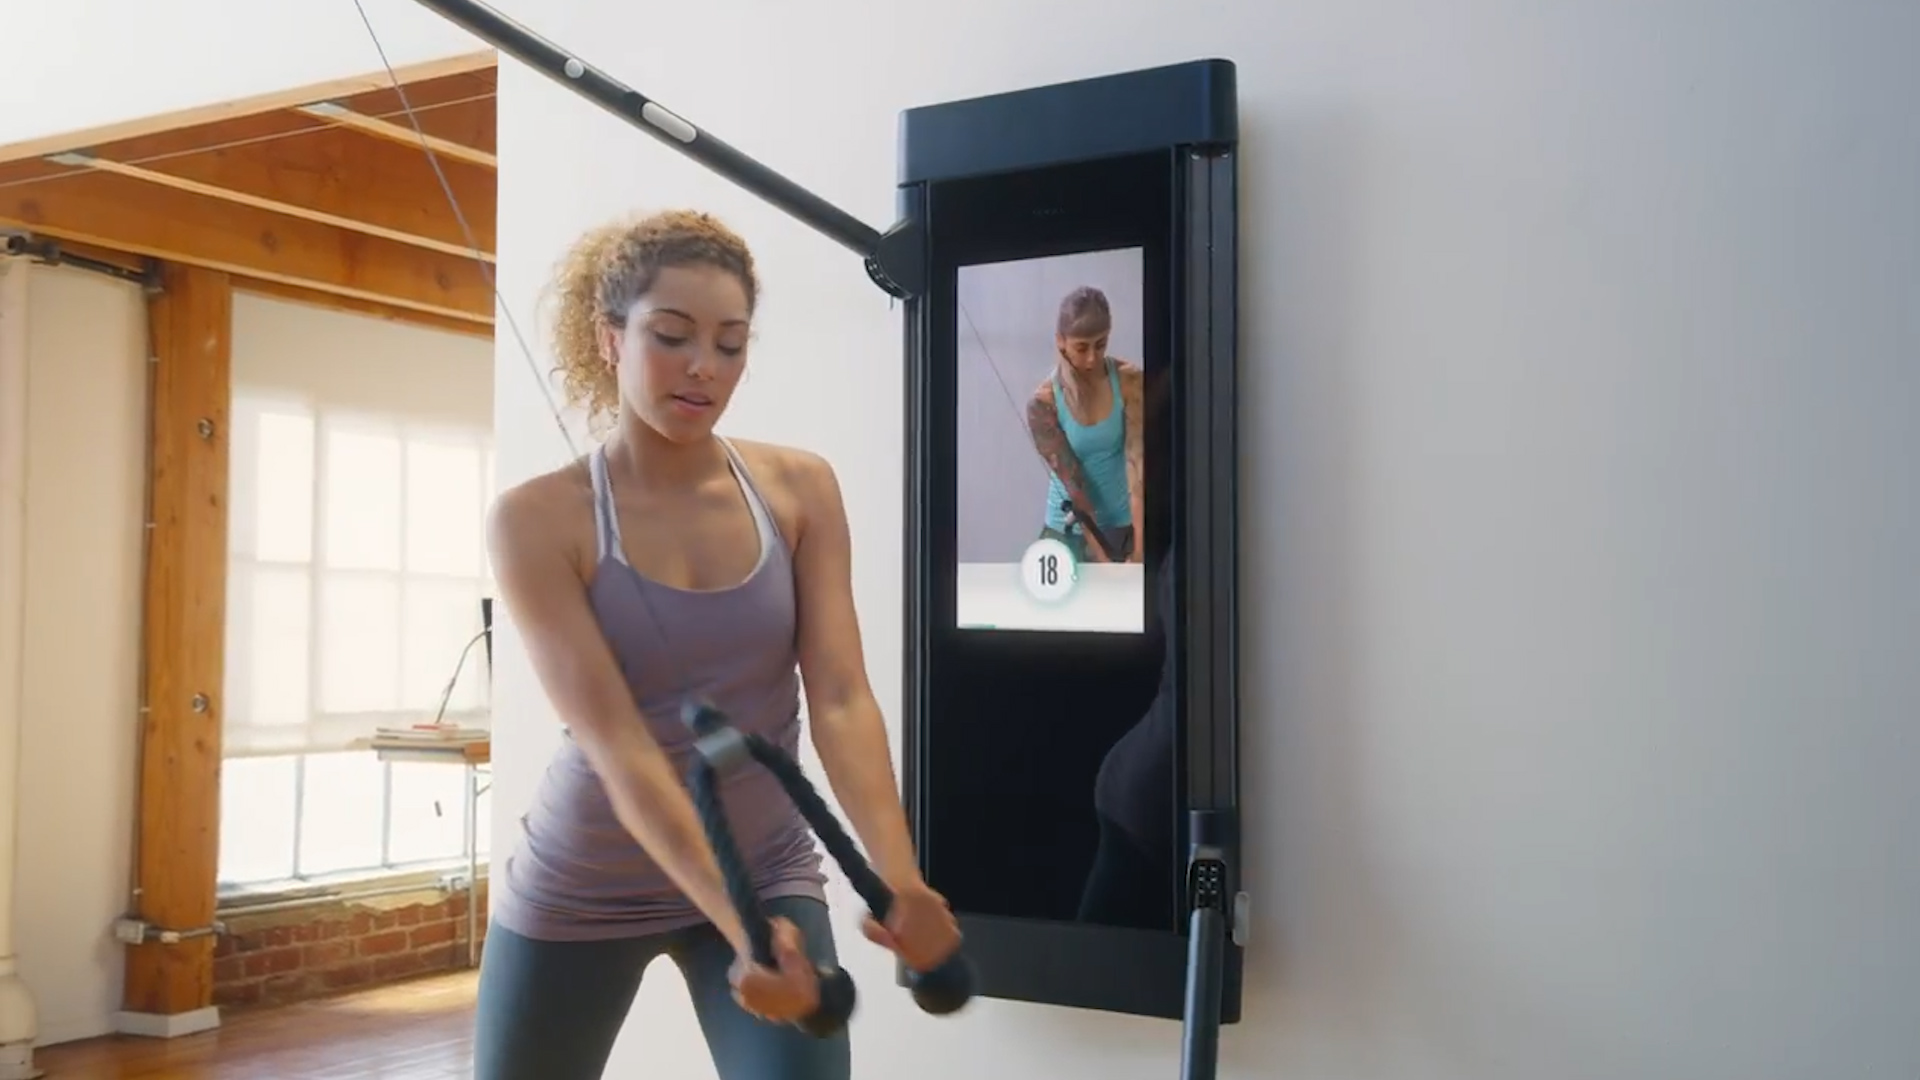 This Machine Learning Fitness Coach Could Get You Into Shape See A Robot Workout